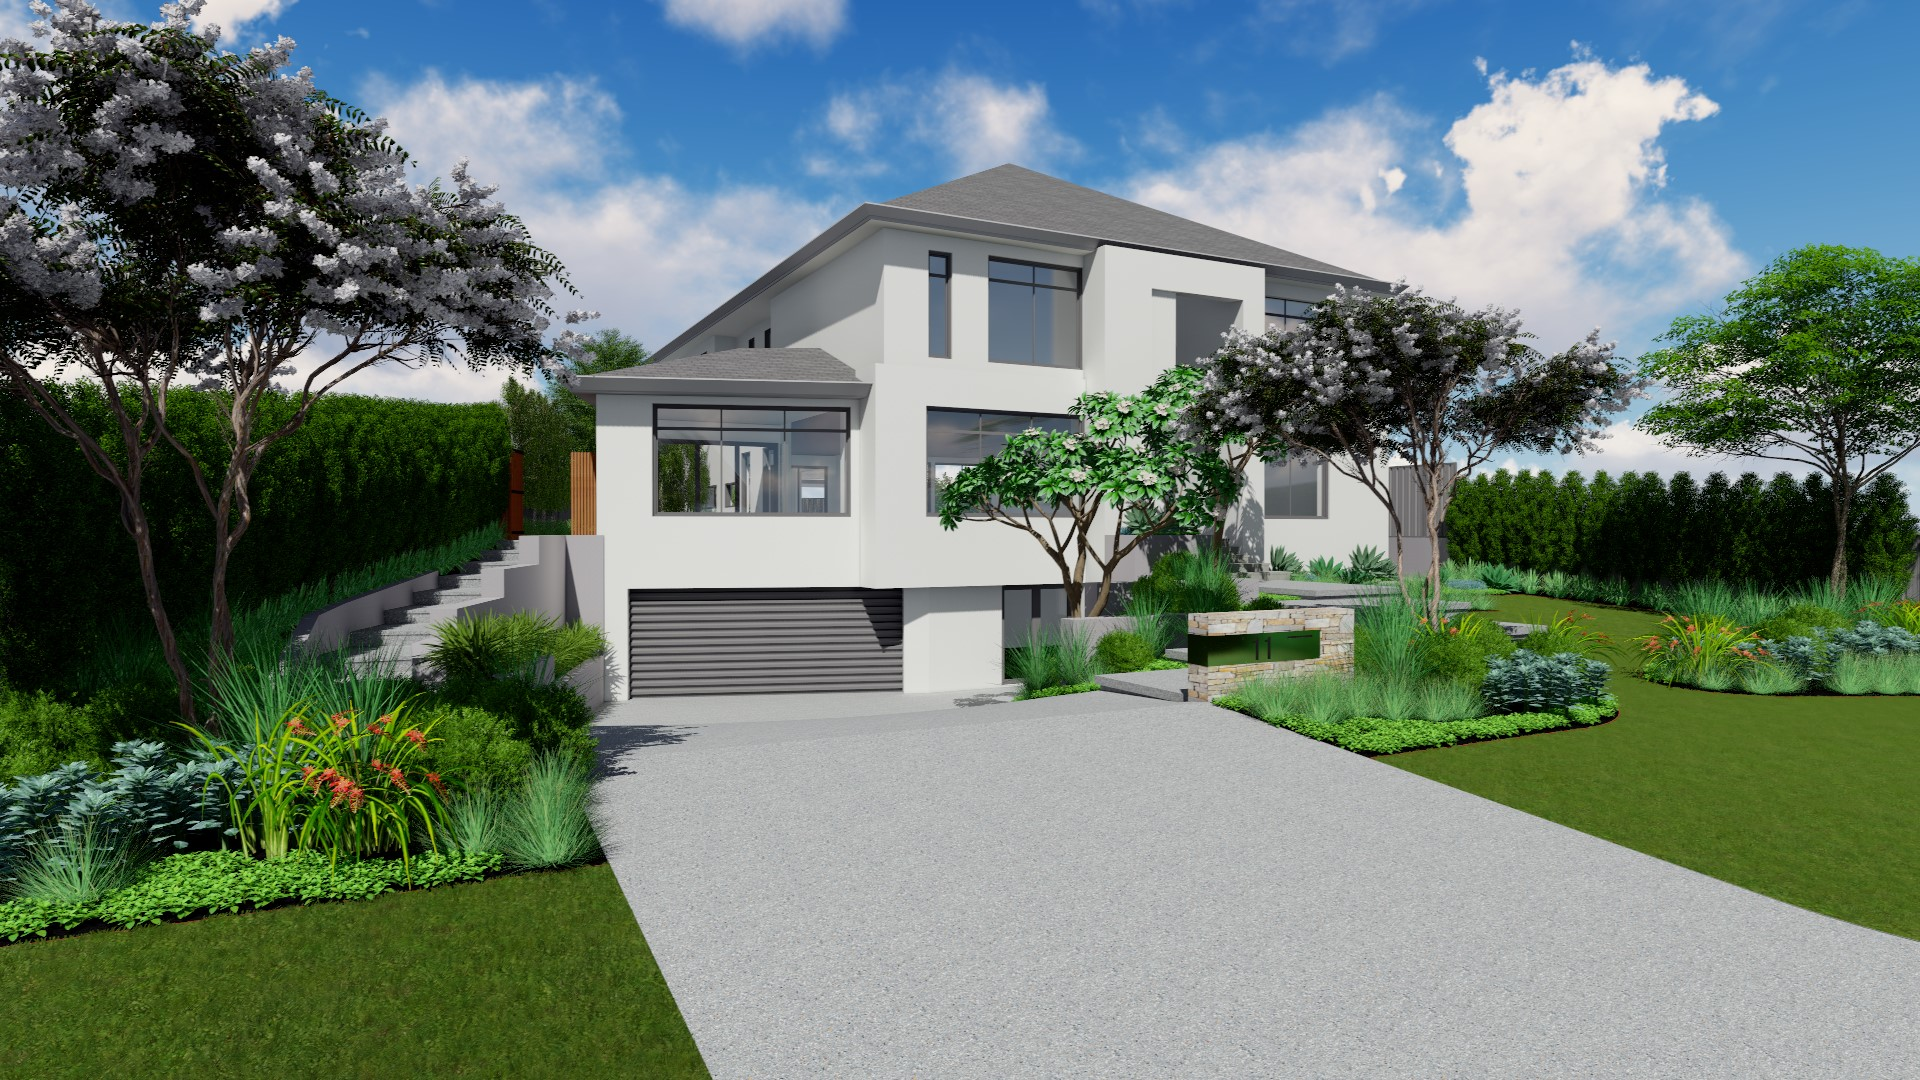 A 3D visualisation for the front landscaping